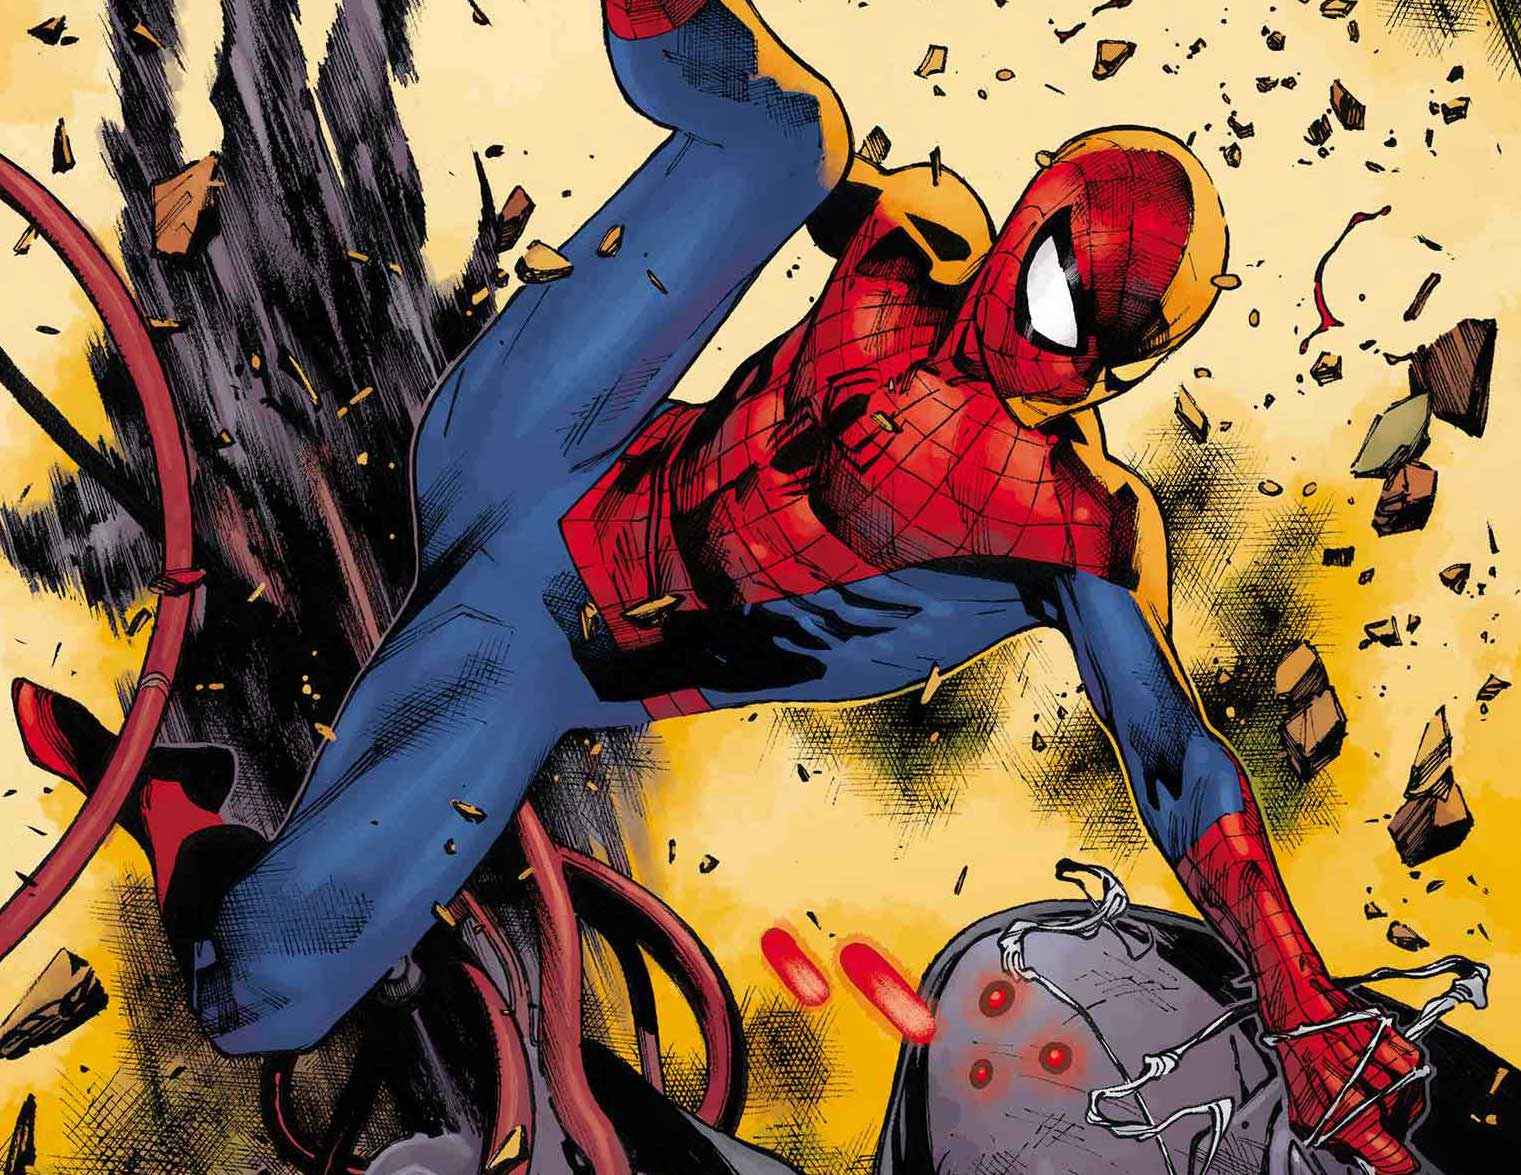 Of course J.J. Abrams killed four Marvel icons in his Spider-Man book